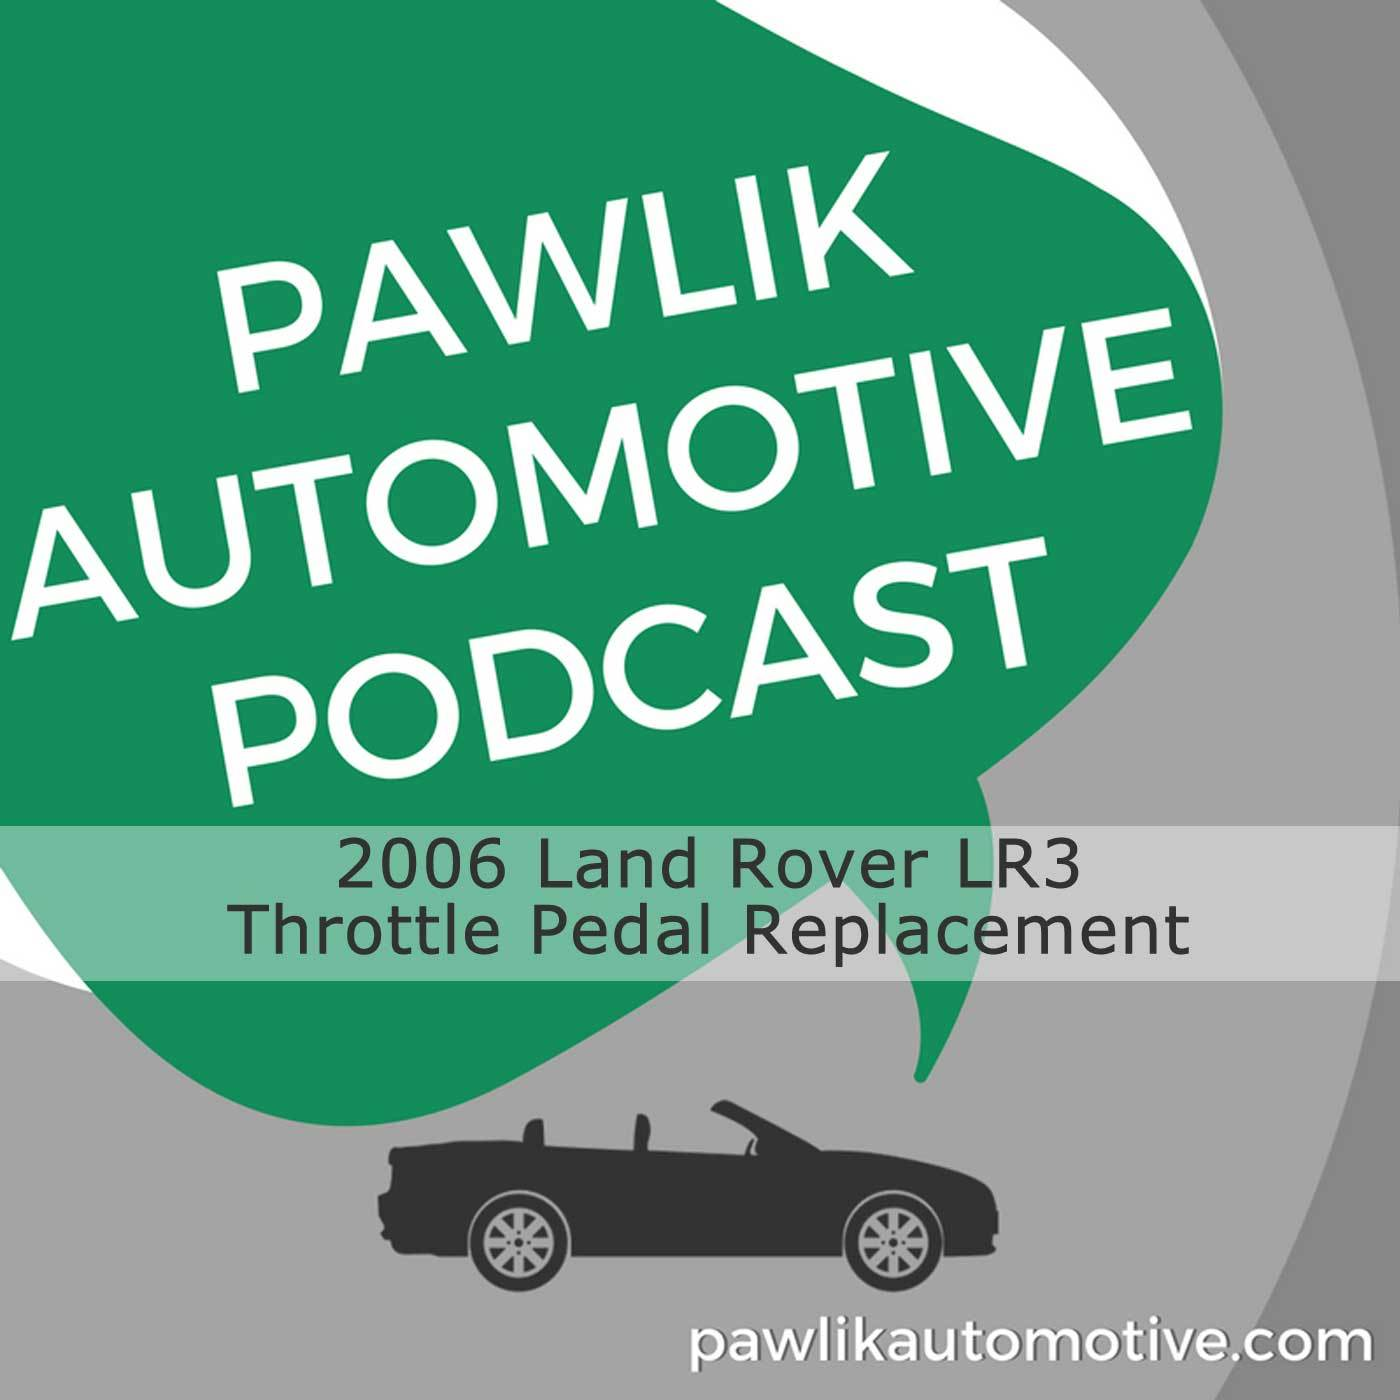 Artwork for 2006 Land Rover LR3, Throttle Pedal Replacement